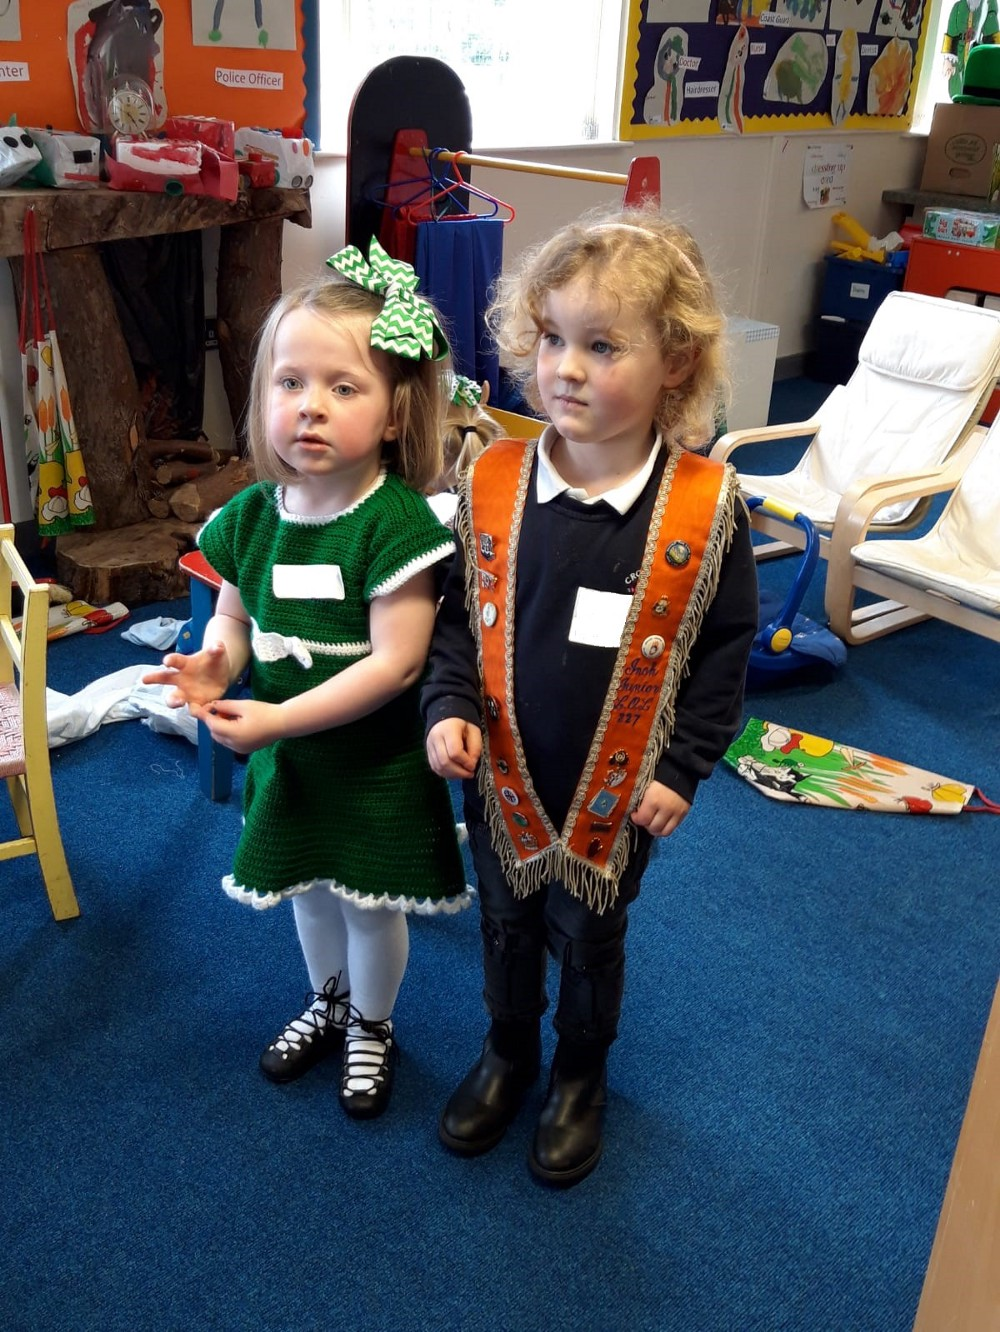 Glass water Preschool and Loughinisland Preschool, Co Down joint St Patrick's Day event learning about different cultures and music. ©2019 Early Years.